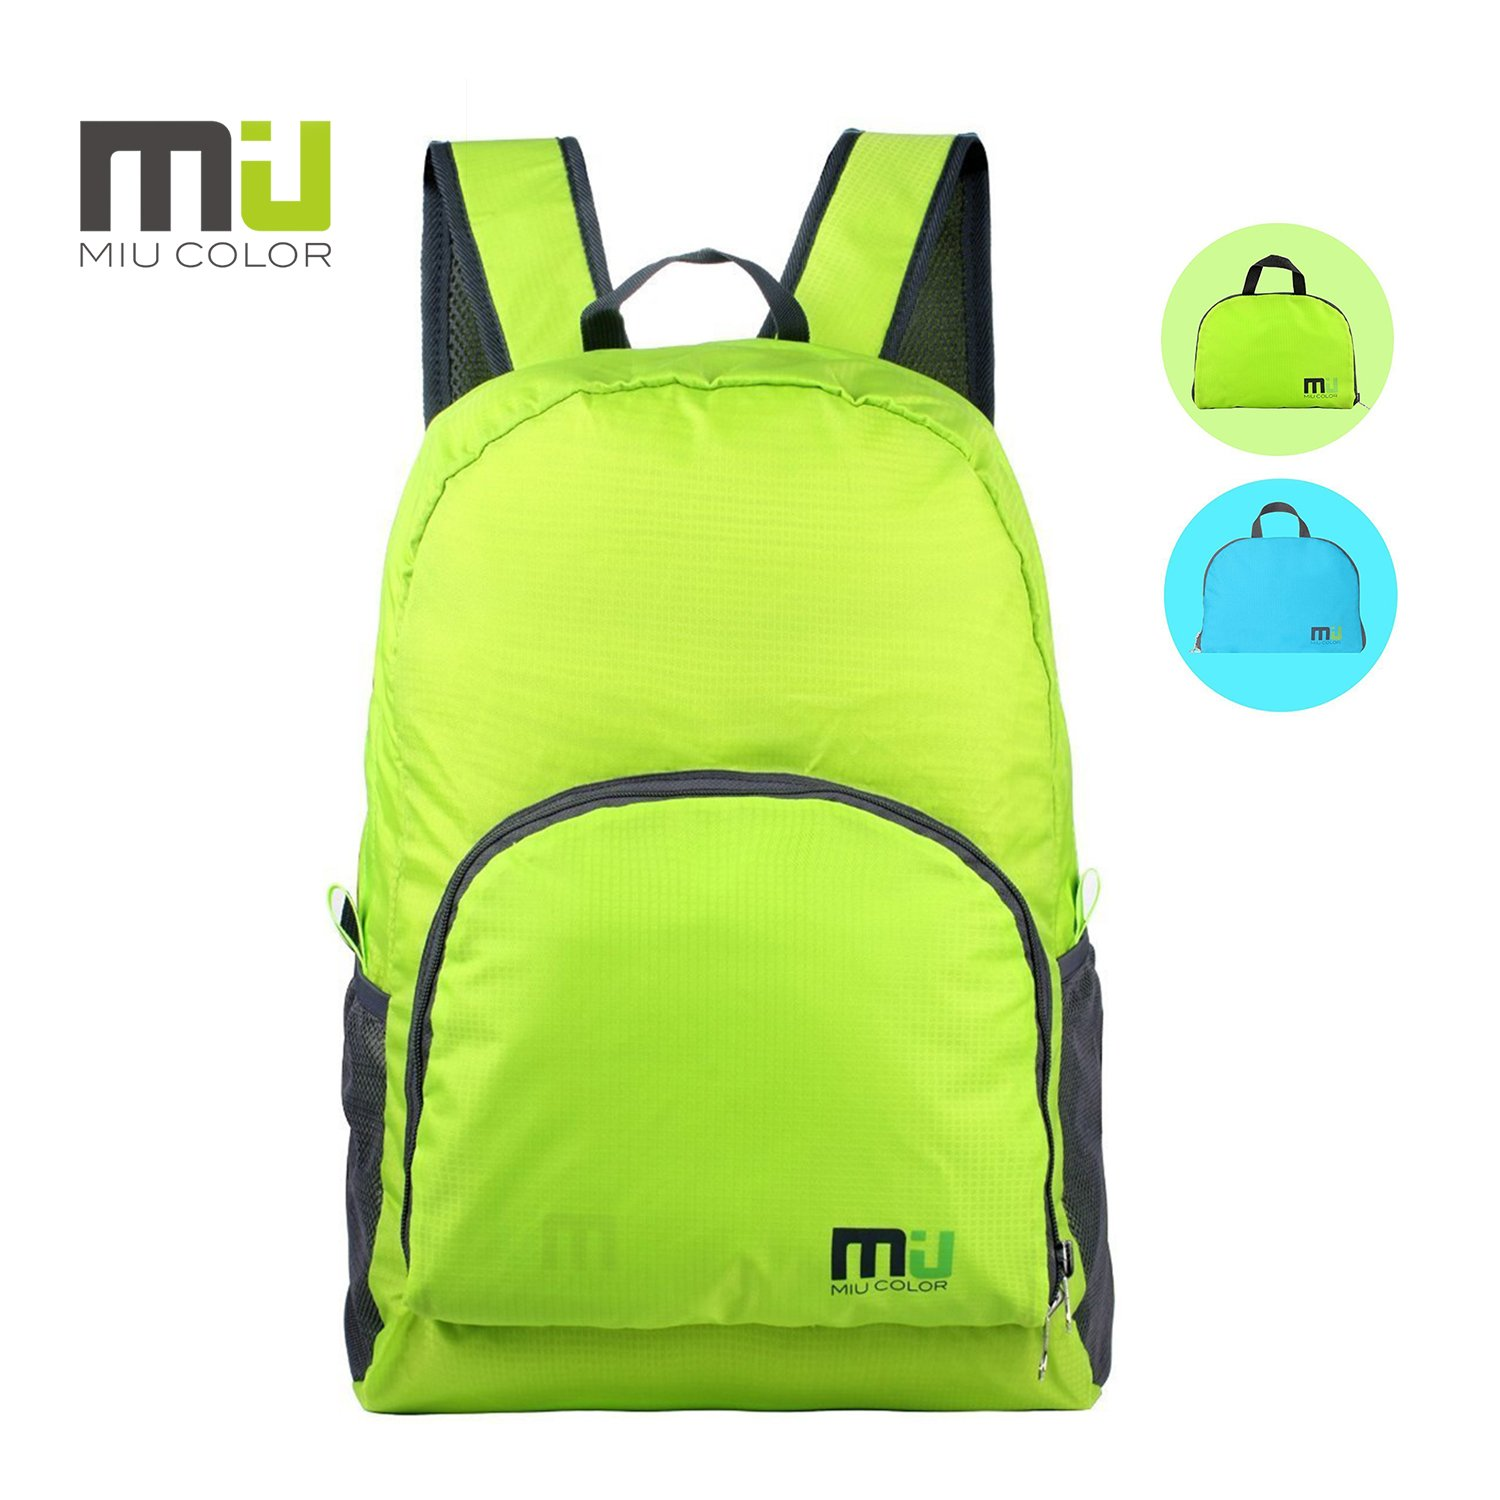 11c21df798 MIU COLOR® Durable Foldable Lightweight Daypack Backpack